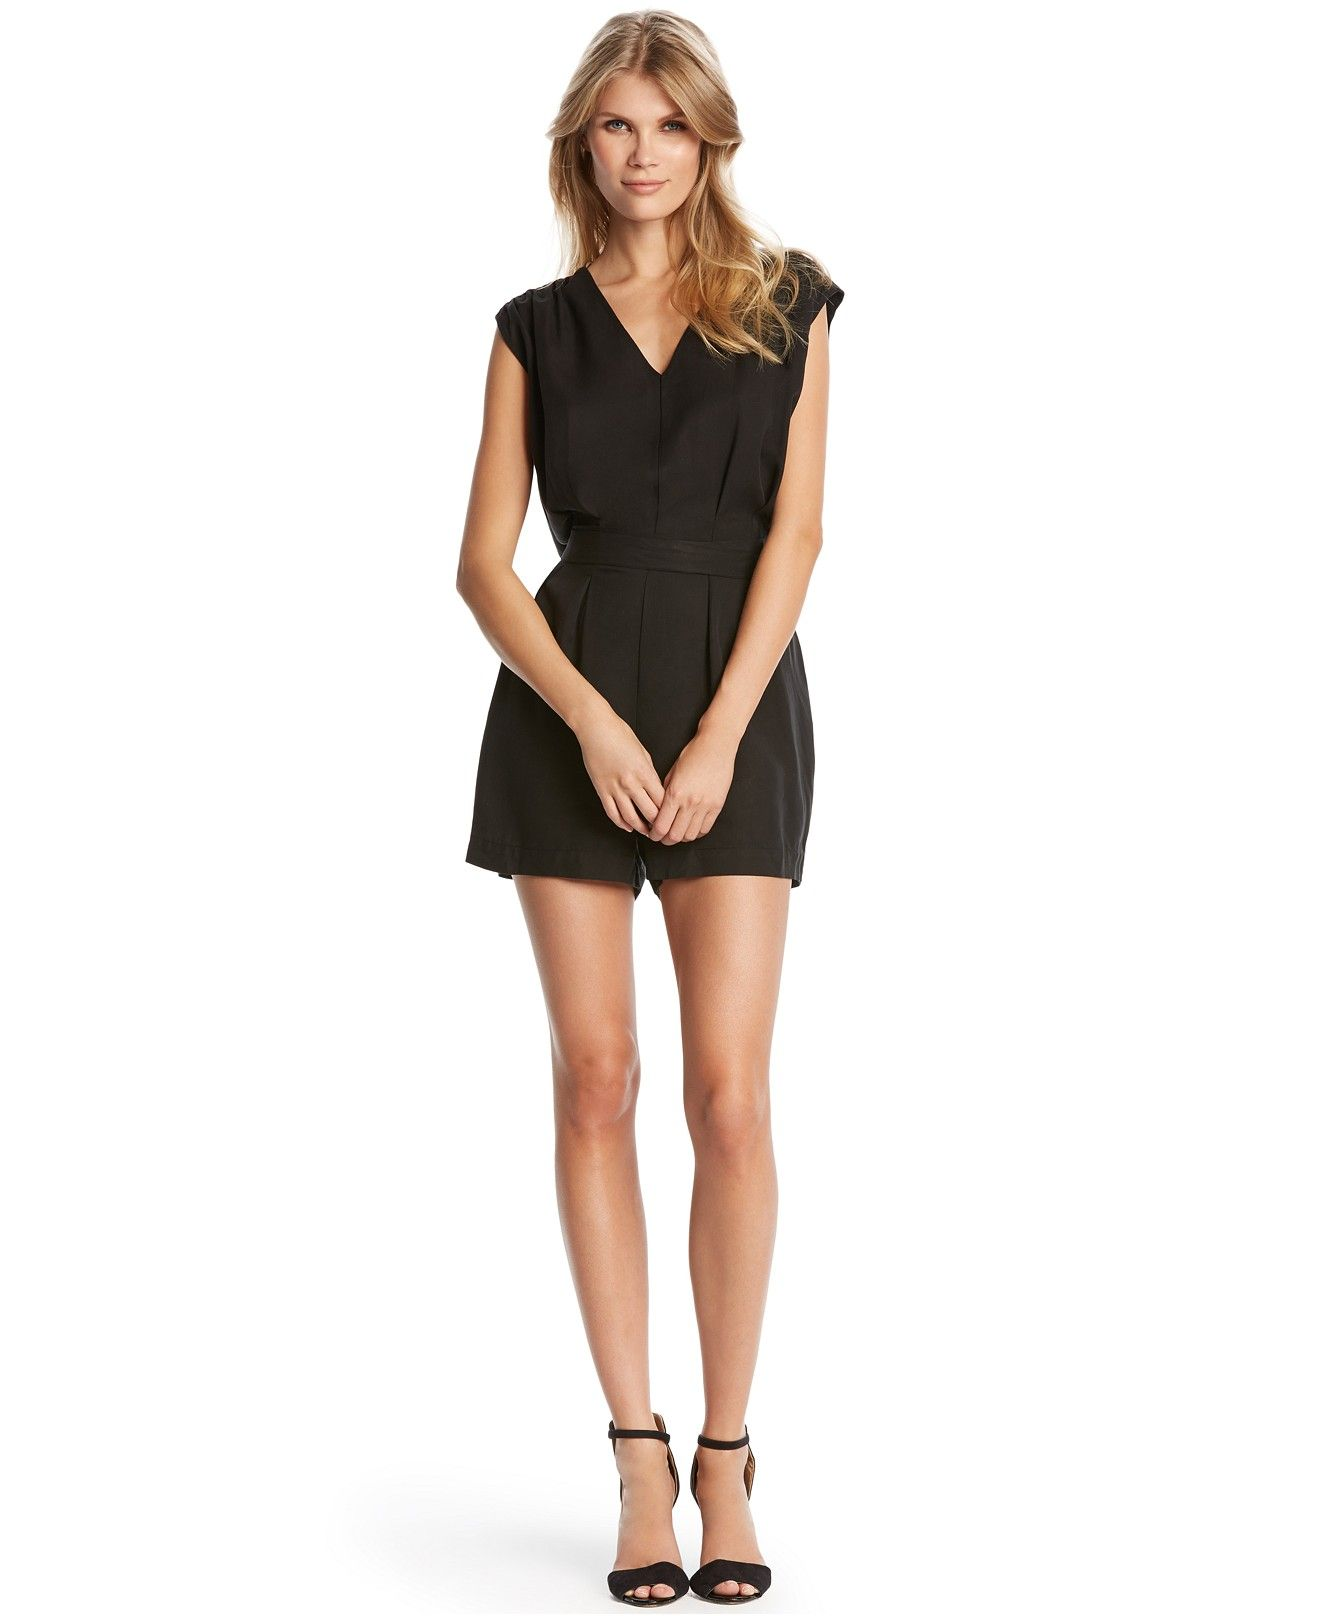 0b7dbcae10ce Kiind Of Pleated V-Neck Romper - Jumpsuits   Rompers - Women - Macy s